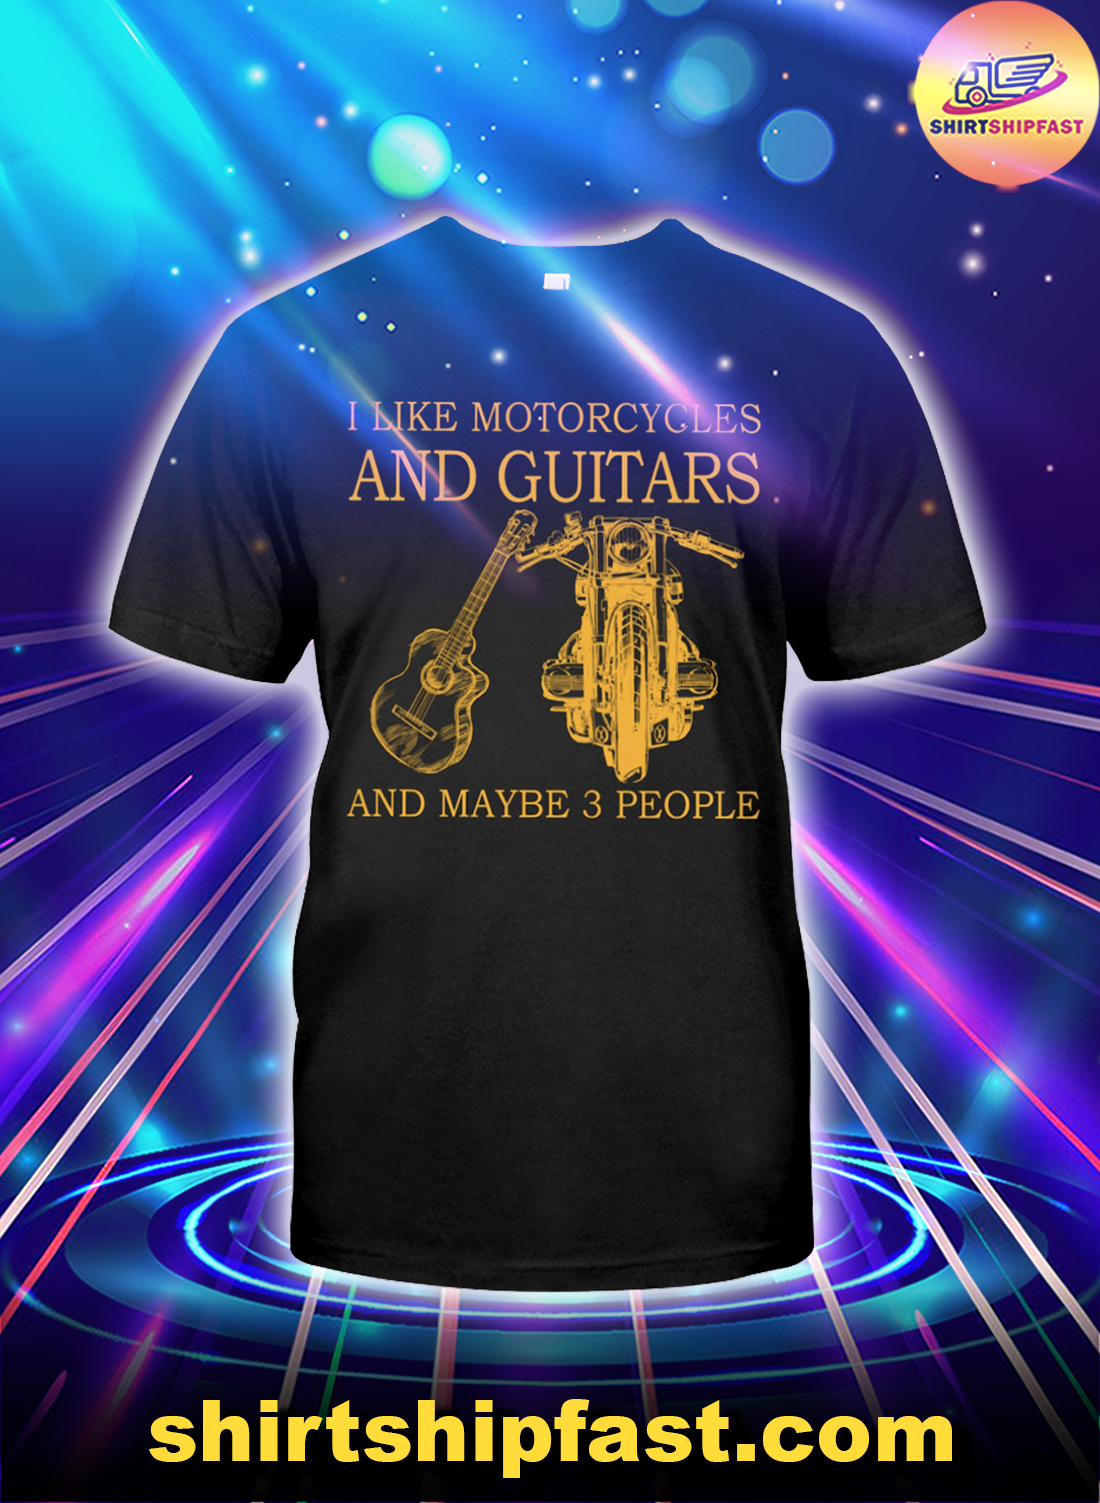 I like motorcycles and guitars and maybe 3 people shirt